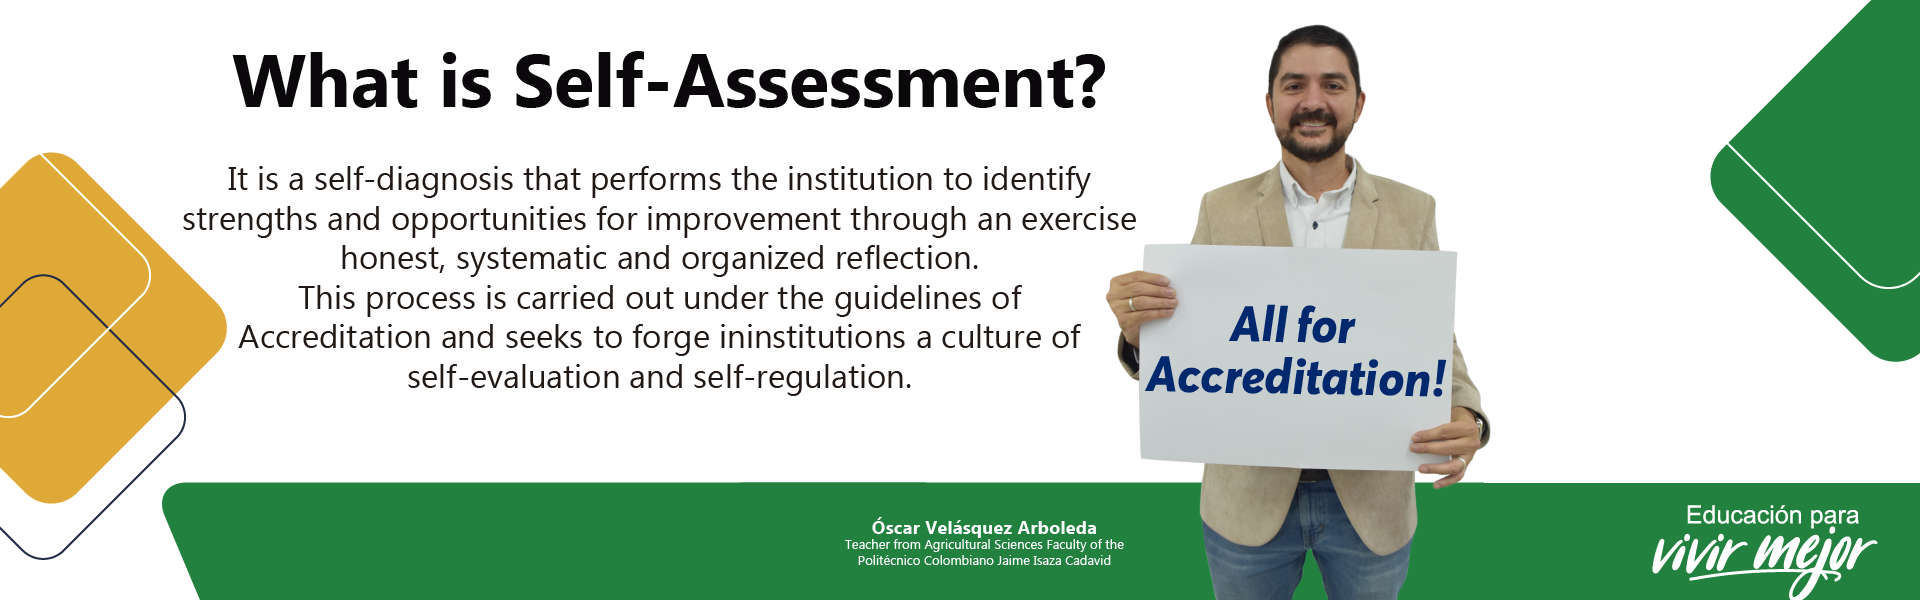 What is self-assesment?